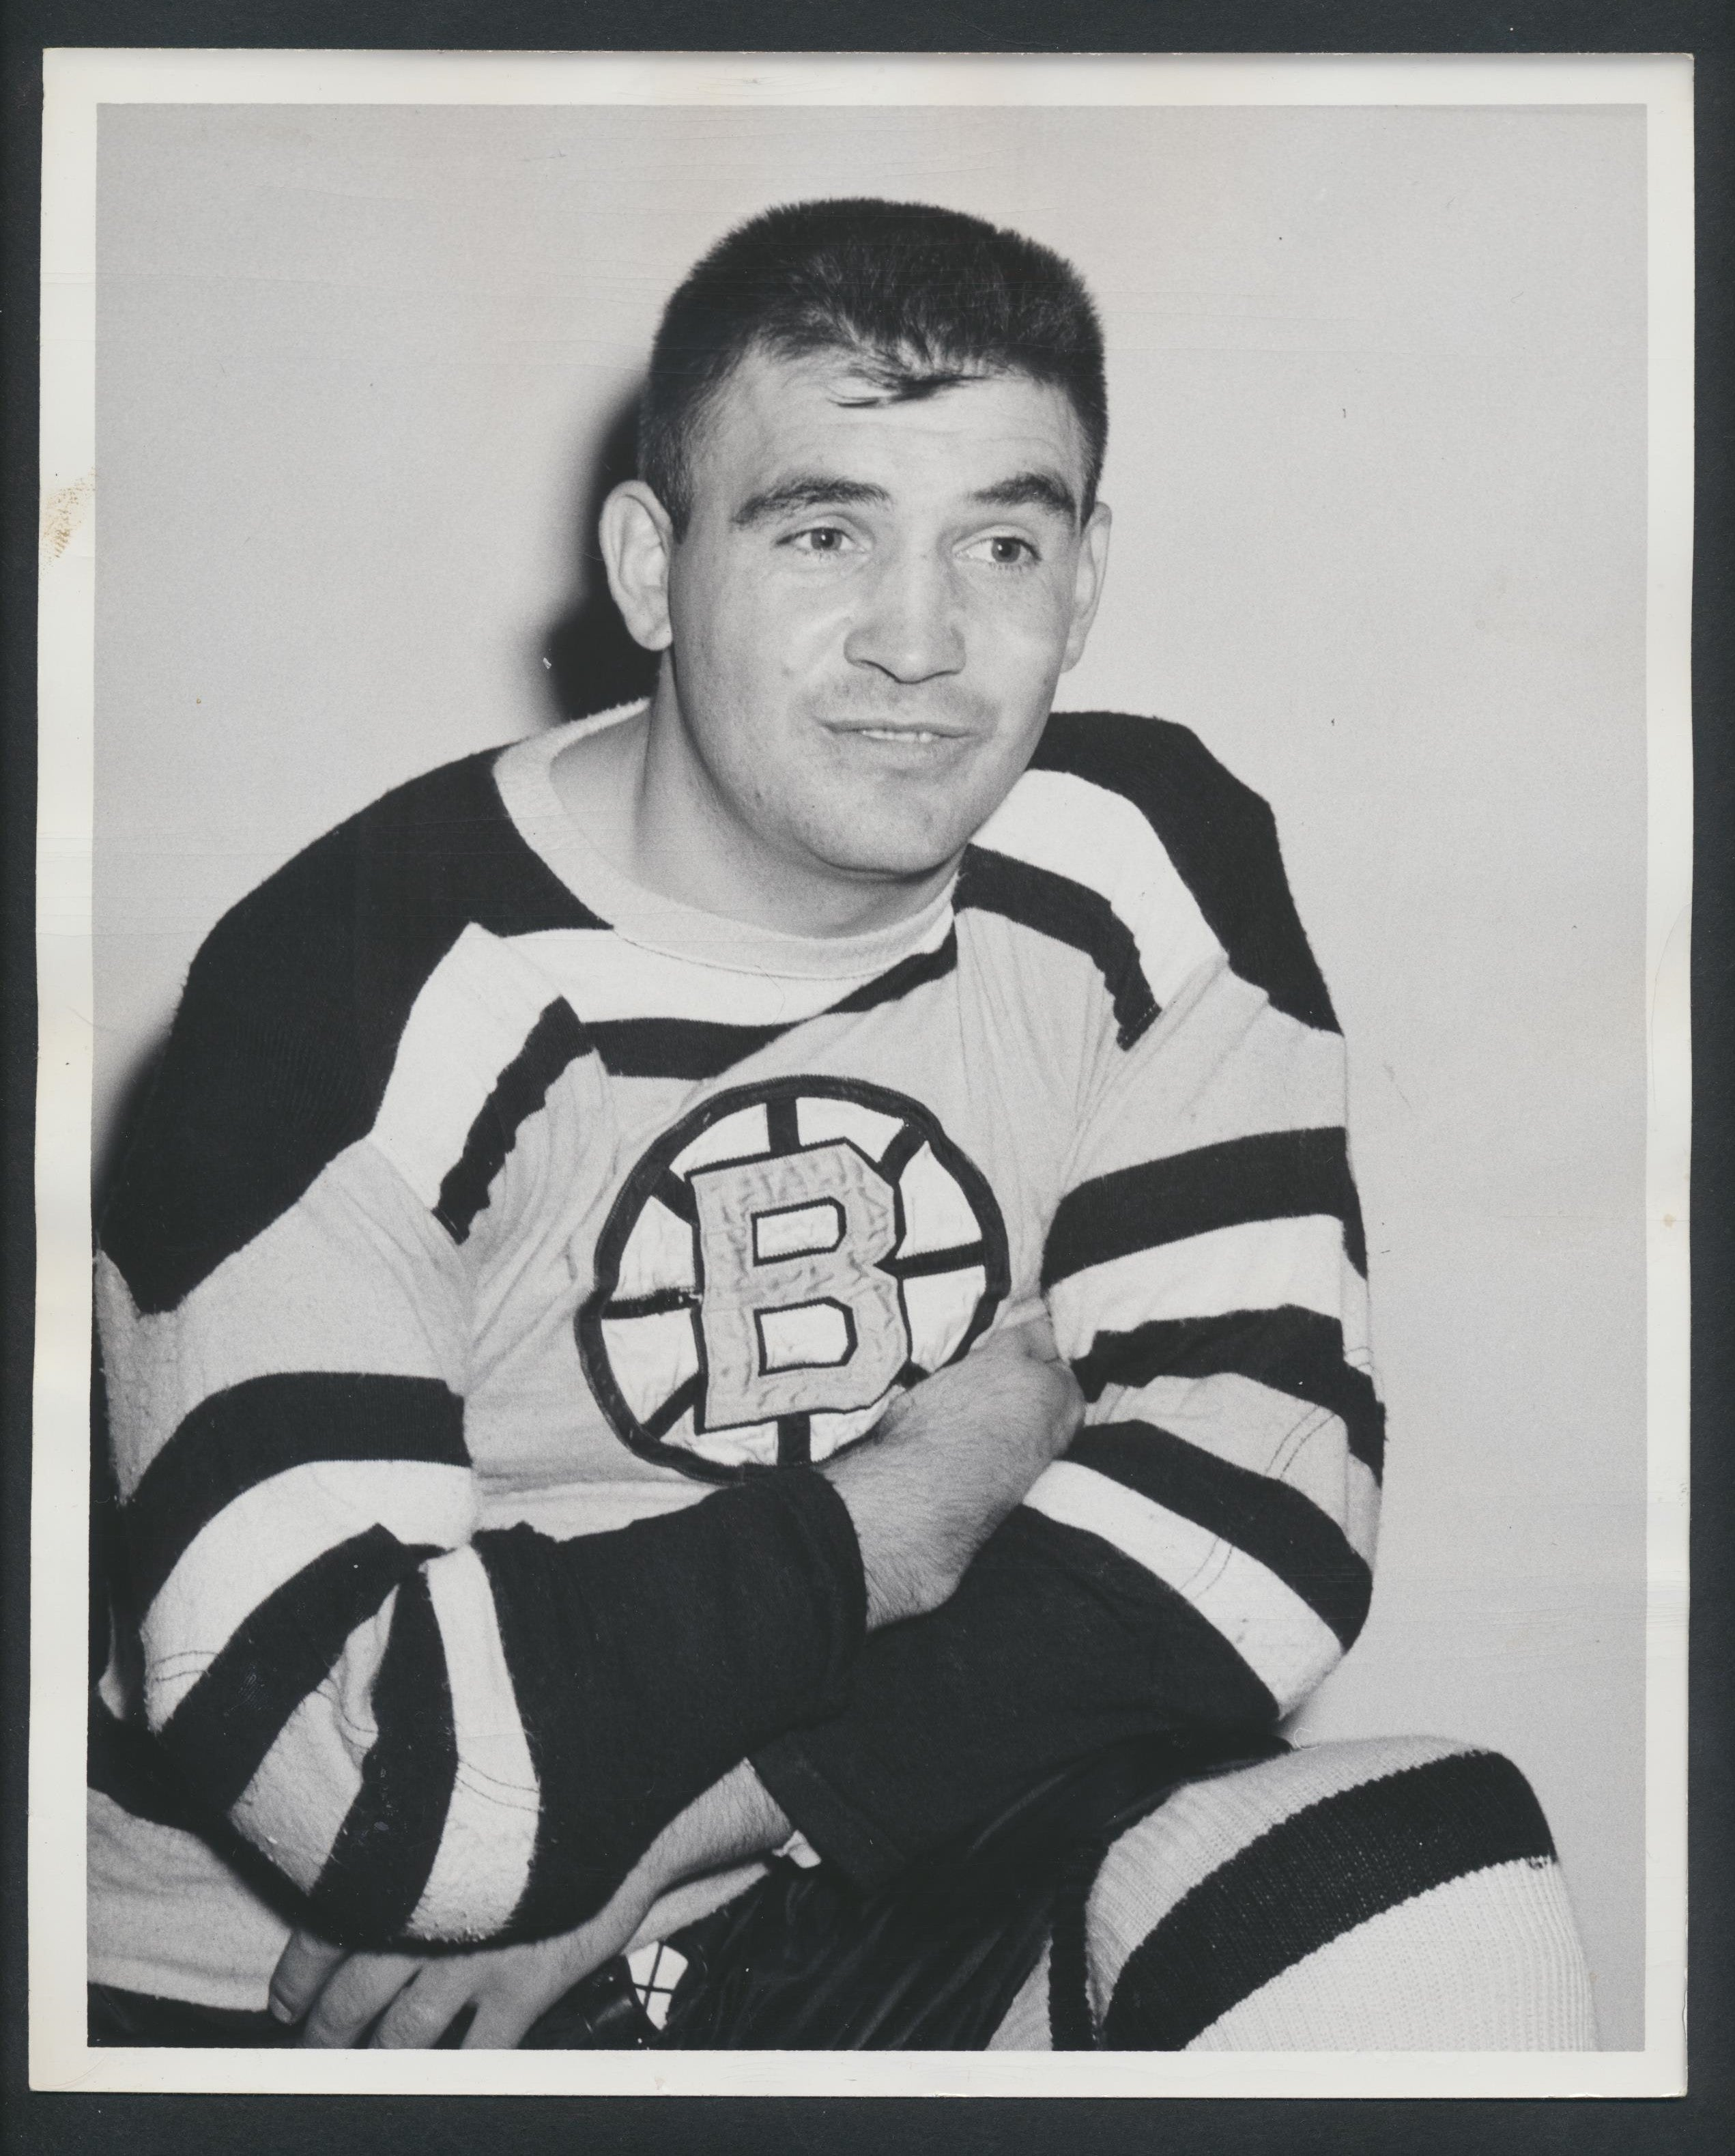 Original Real Chevrefils -Boston Bruins Press Photo 1959 NHL Hockey Pic Archive